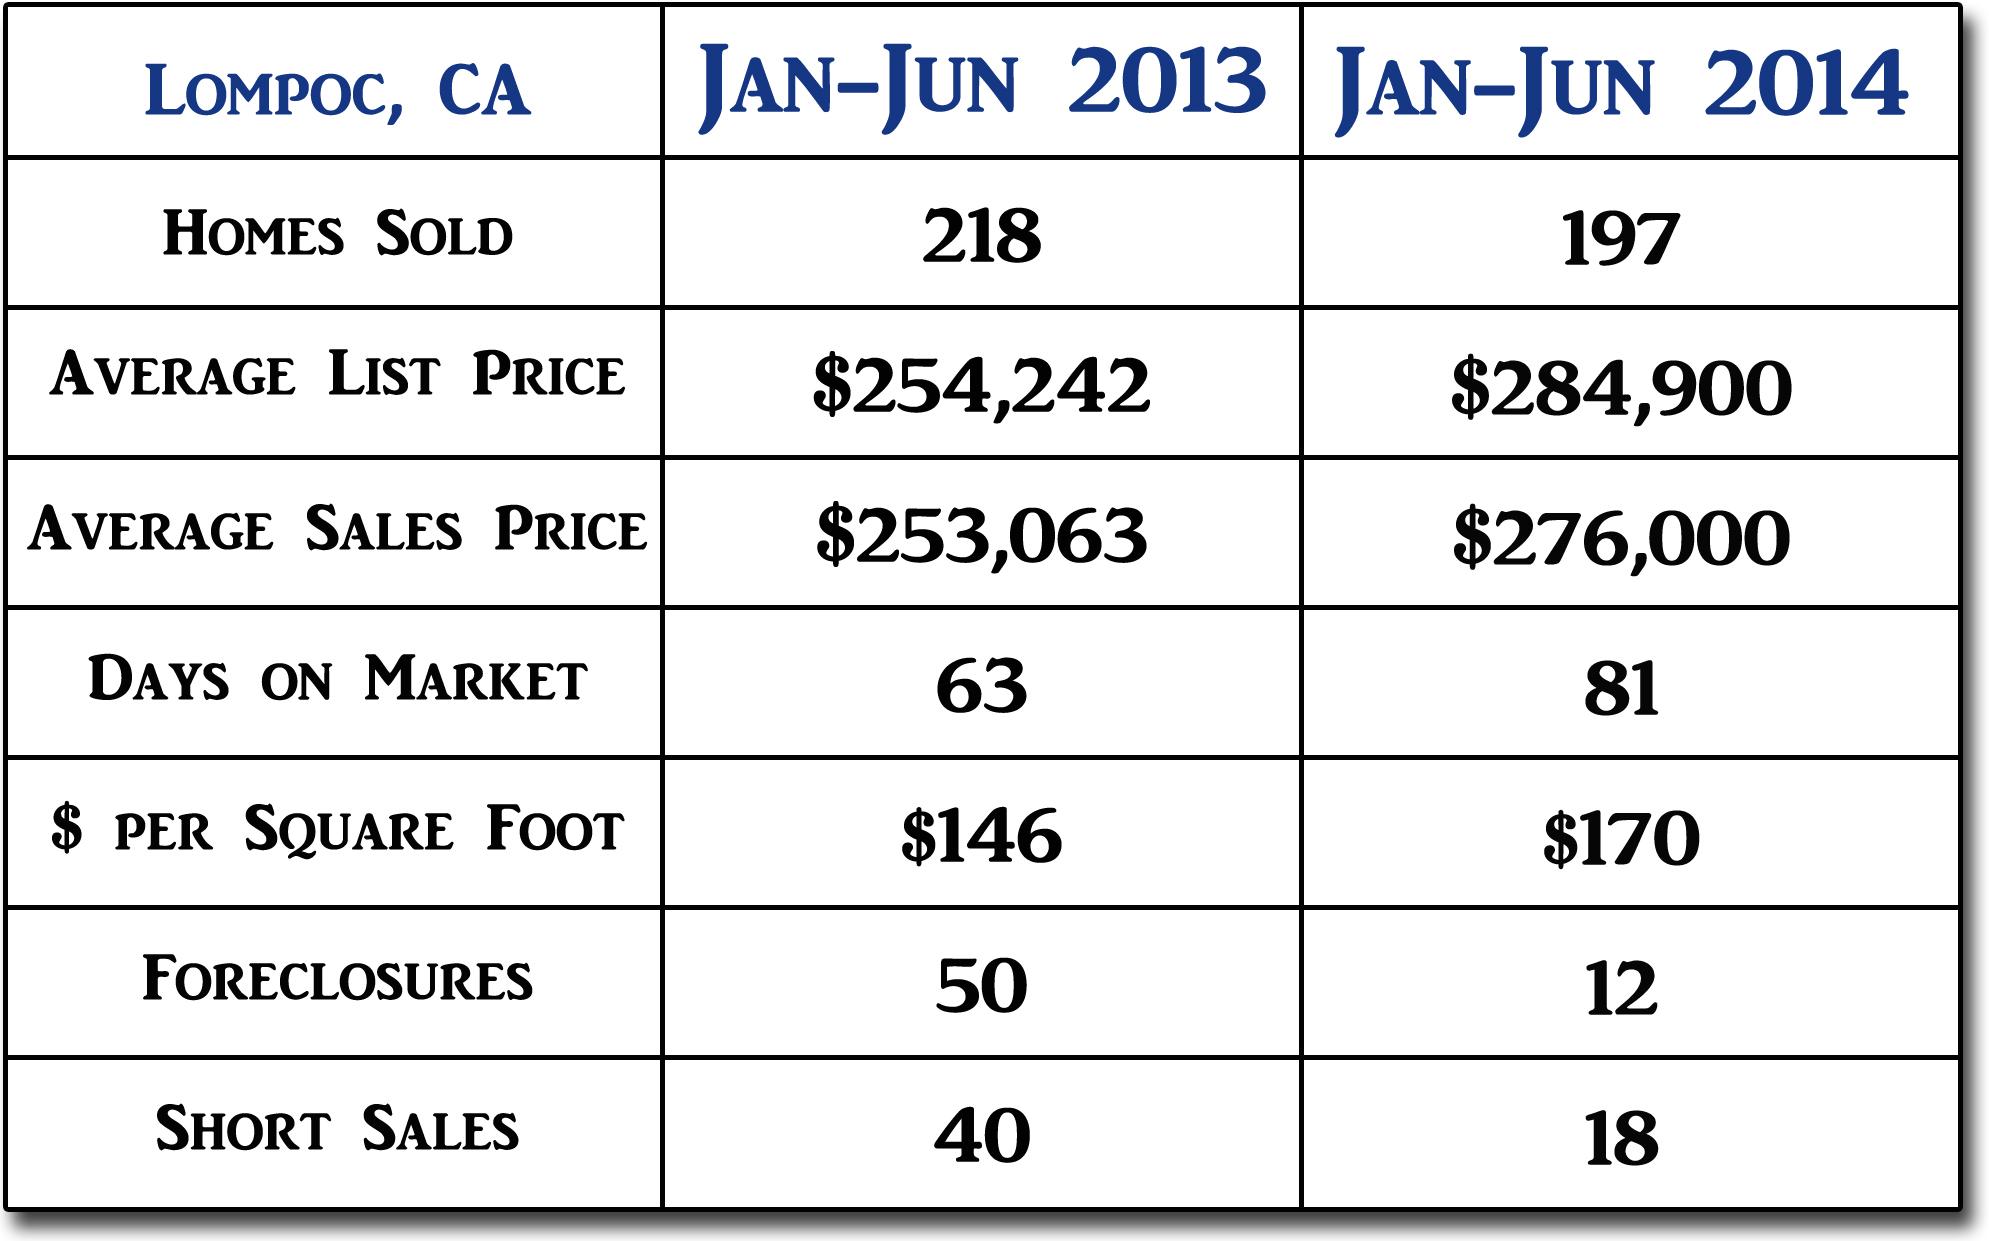 2014 Lompoc CA Mid Year Real Estate Market Update – Sample Real Estate Market Analysis